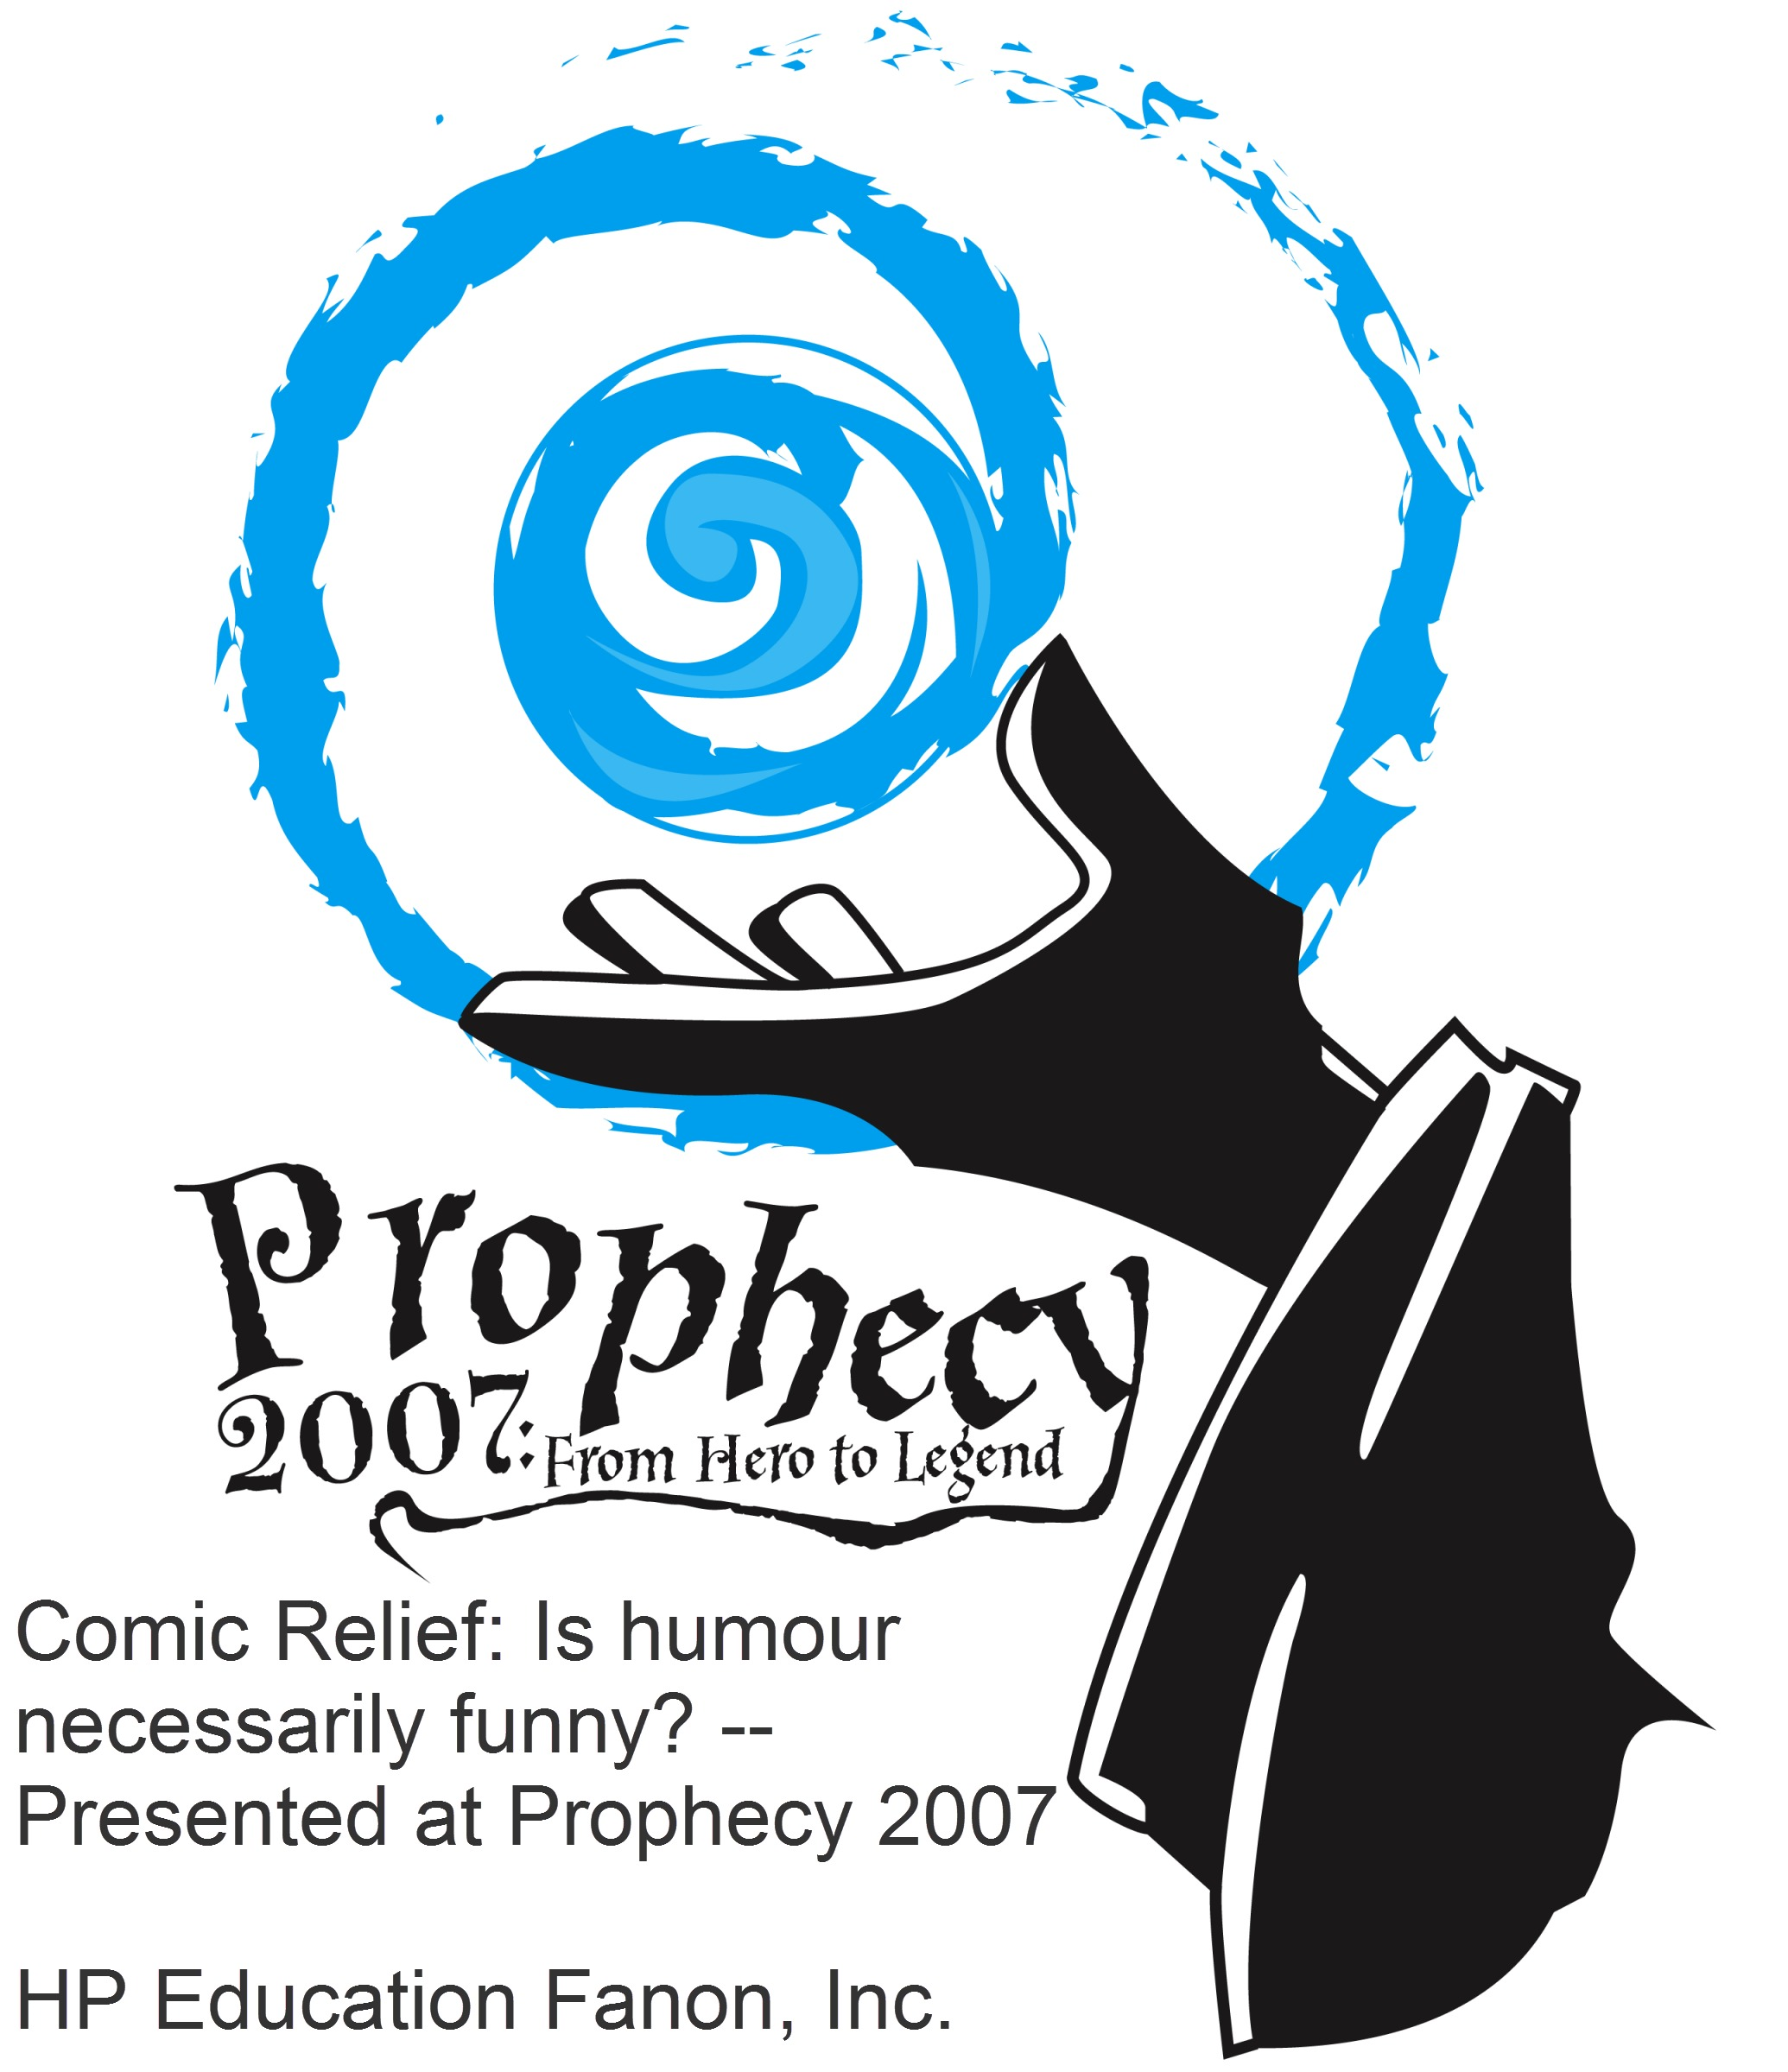 Comic Relief: Is humour necessarily funny? -- Presented at Prophecy 2007